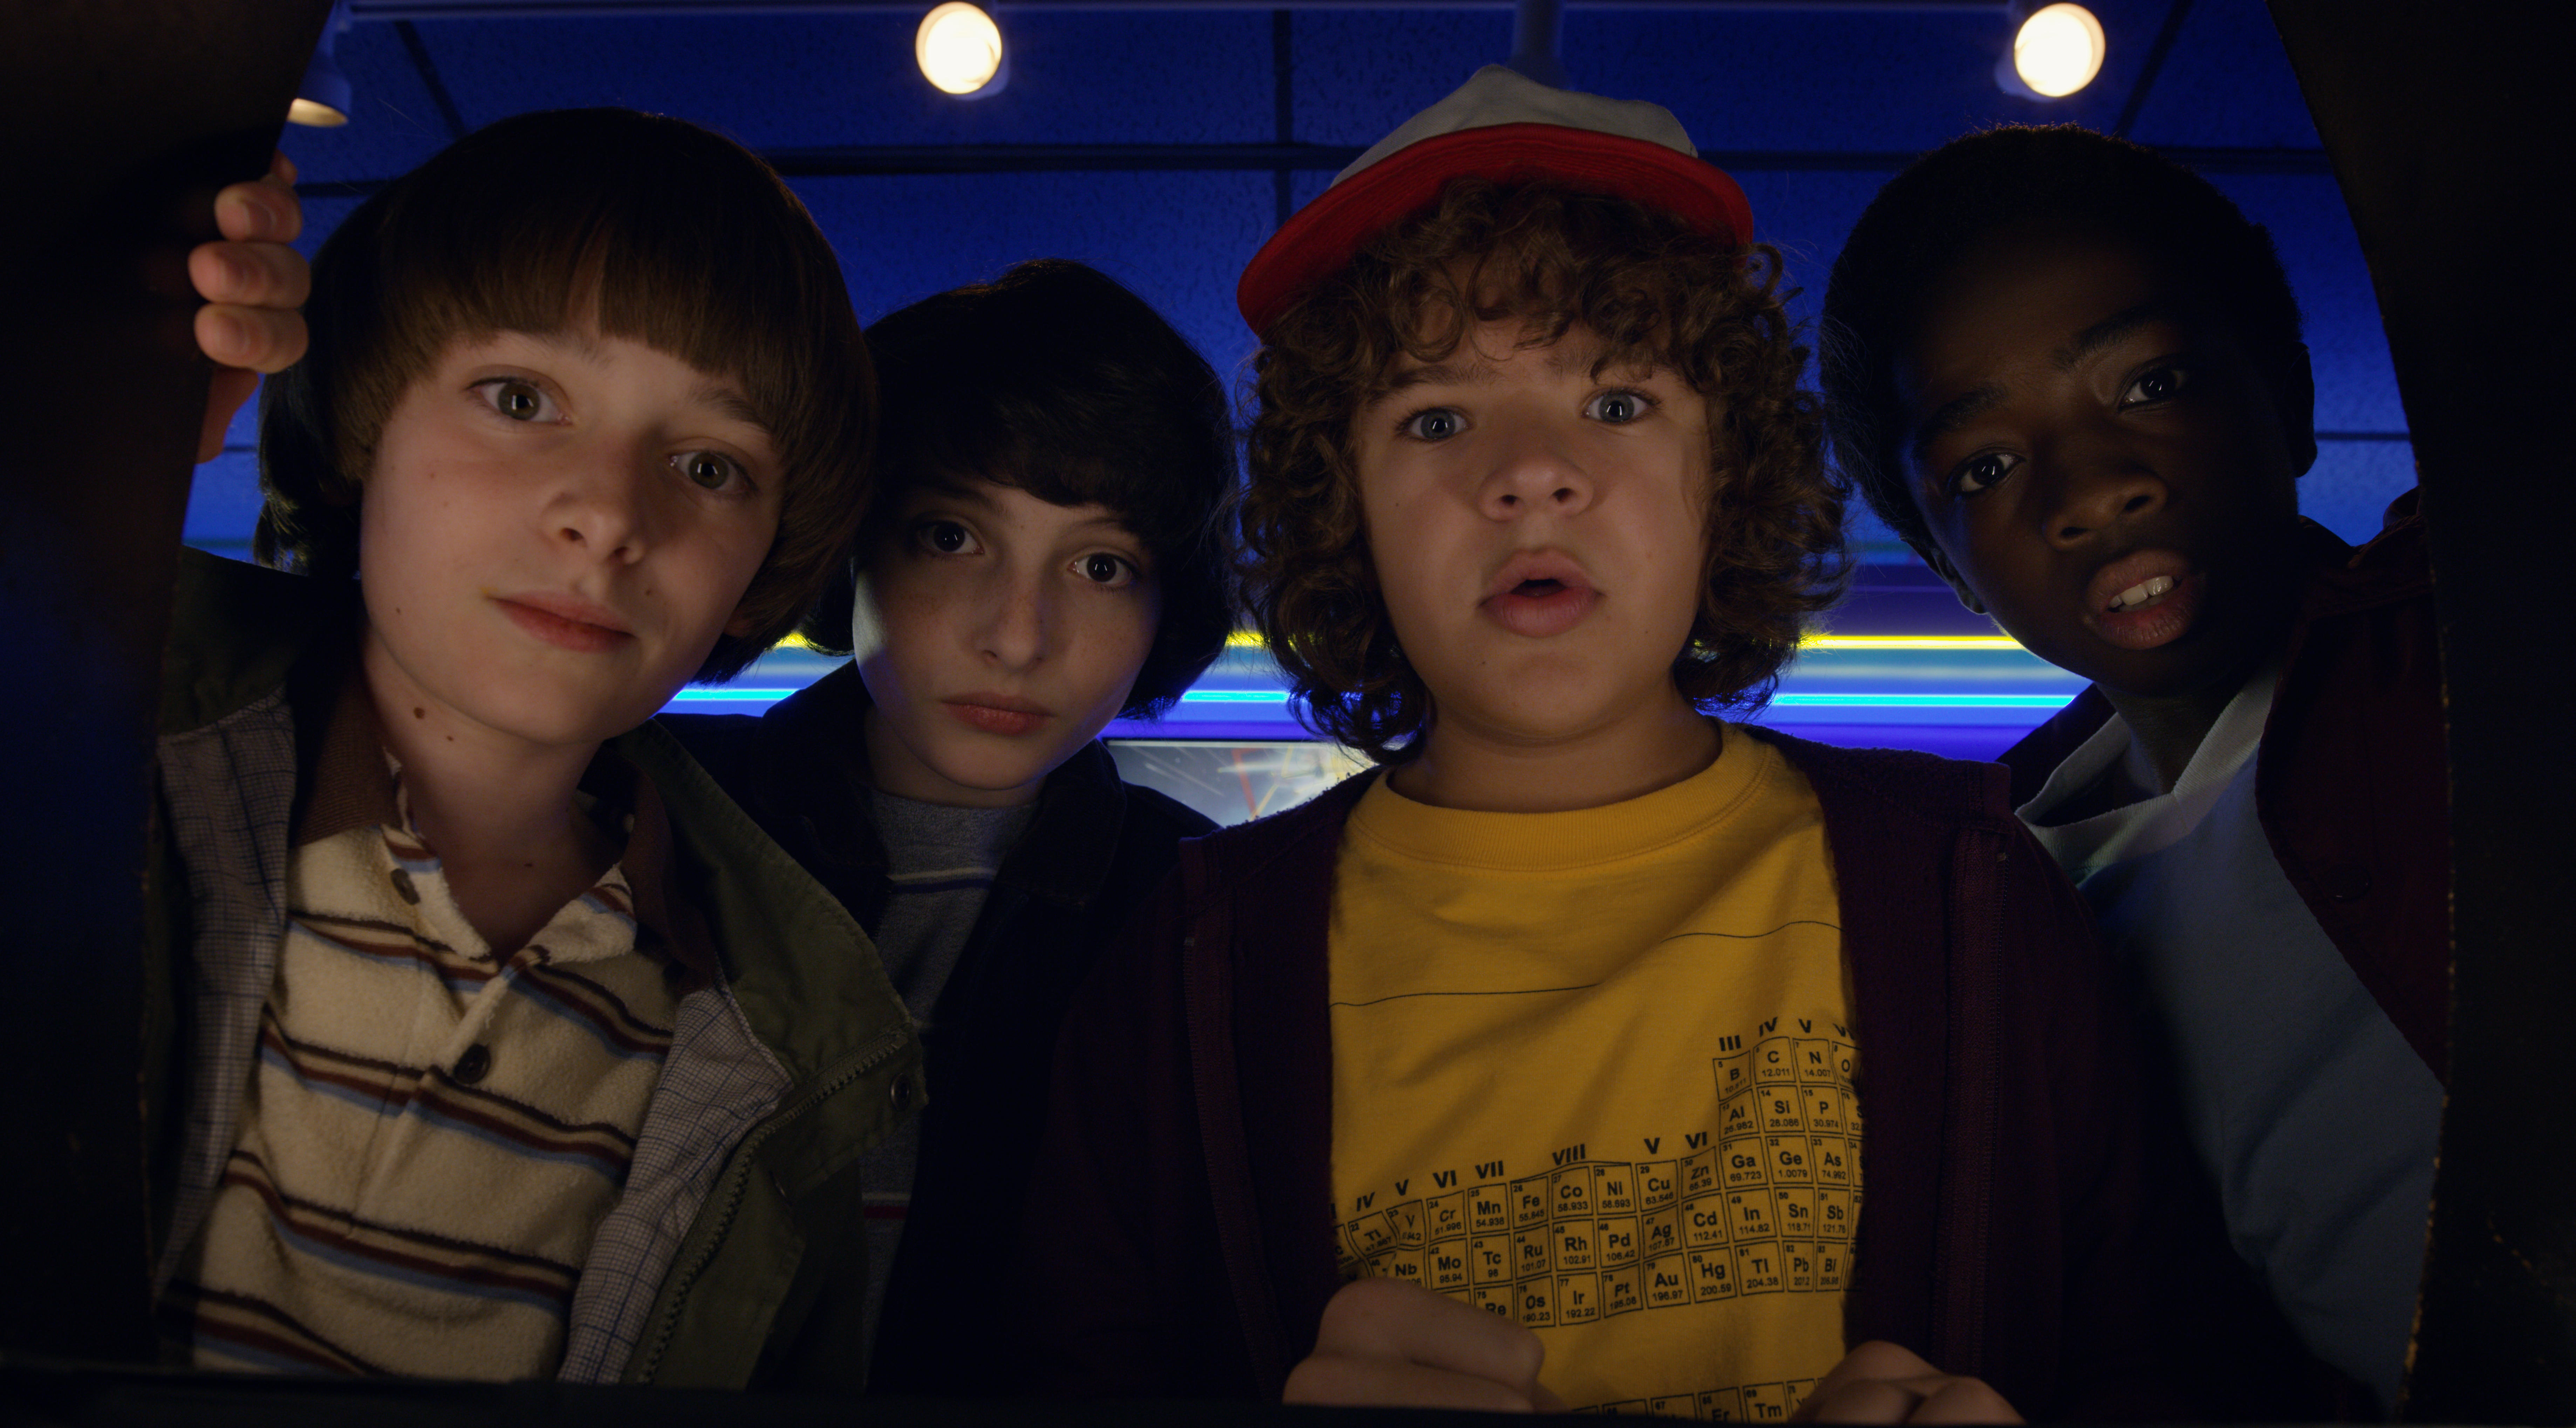 """Child stars of """"Stranger Things 2"""" look into the camera"""